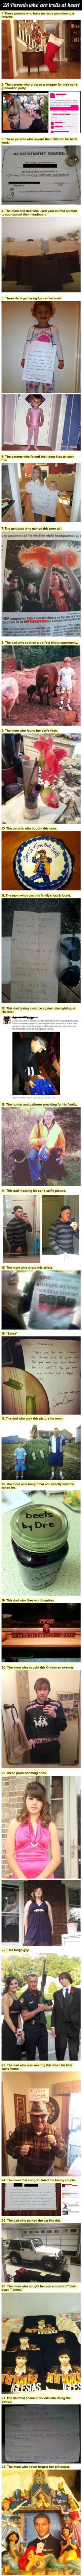 hilarious: Funny Parents, Giggle, Funny Stuff, Hilarious Parents, Parenting Win, So Funny, Awesome Parent, Troll Parents